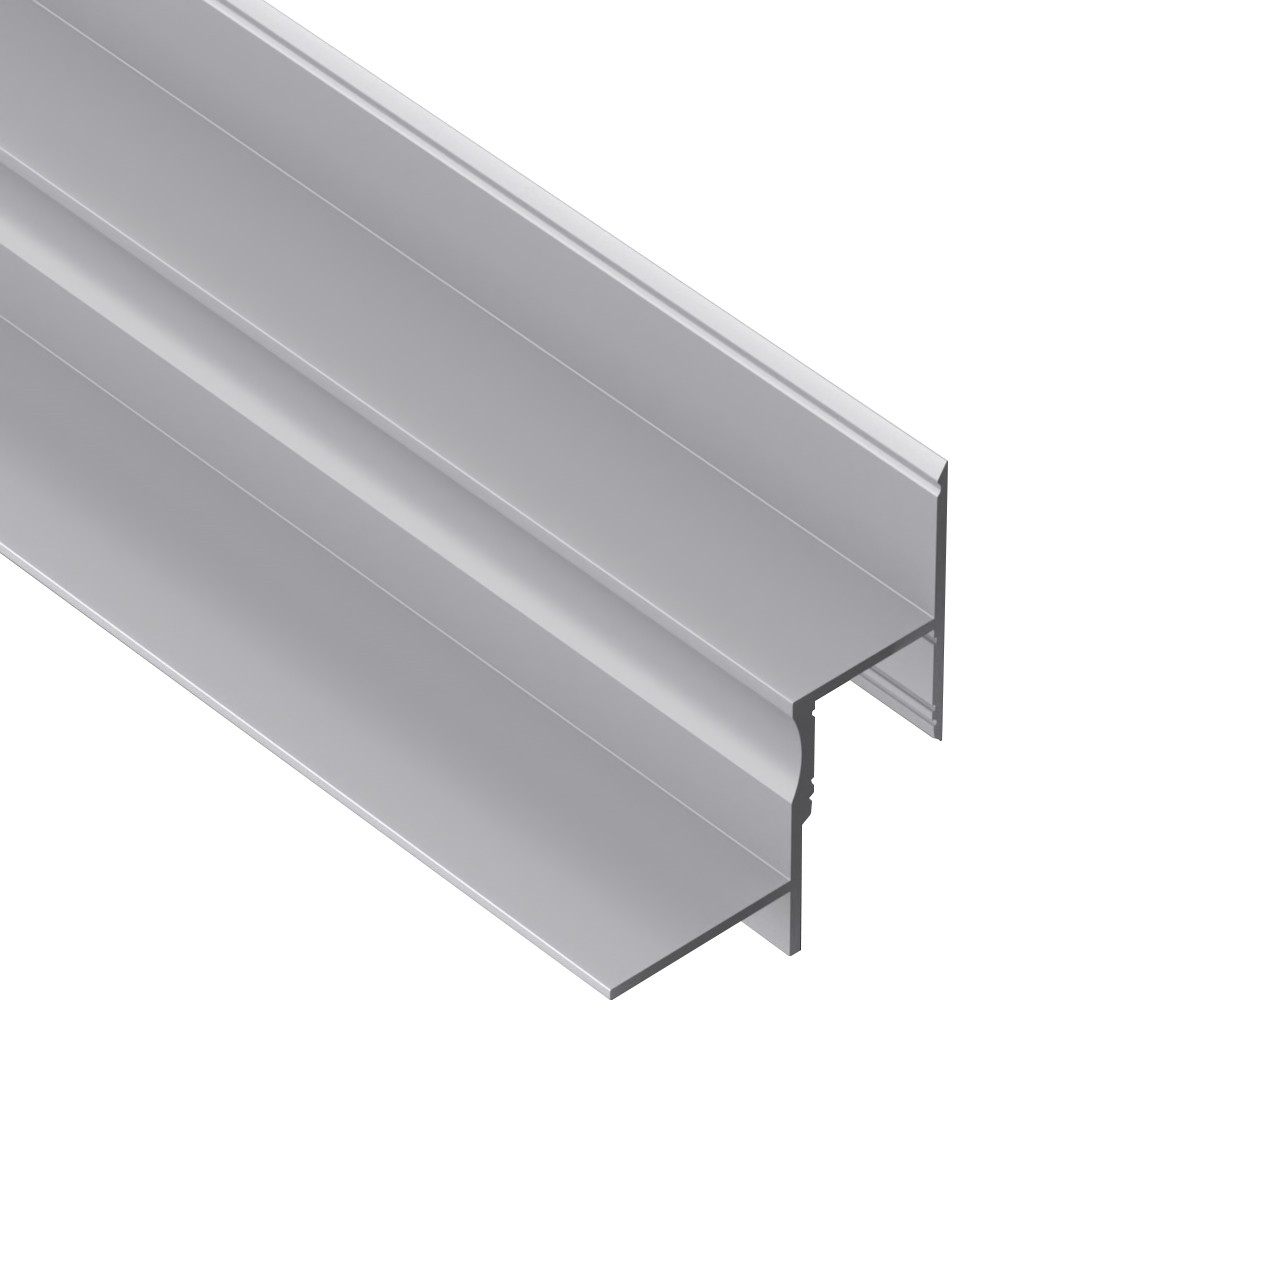 AT7N Recessed Edge LED Profile for LED Strip 55.5x65.5mm